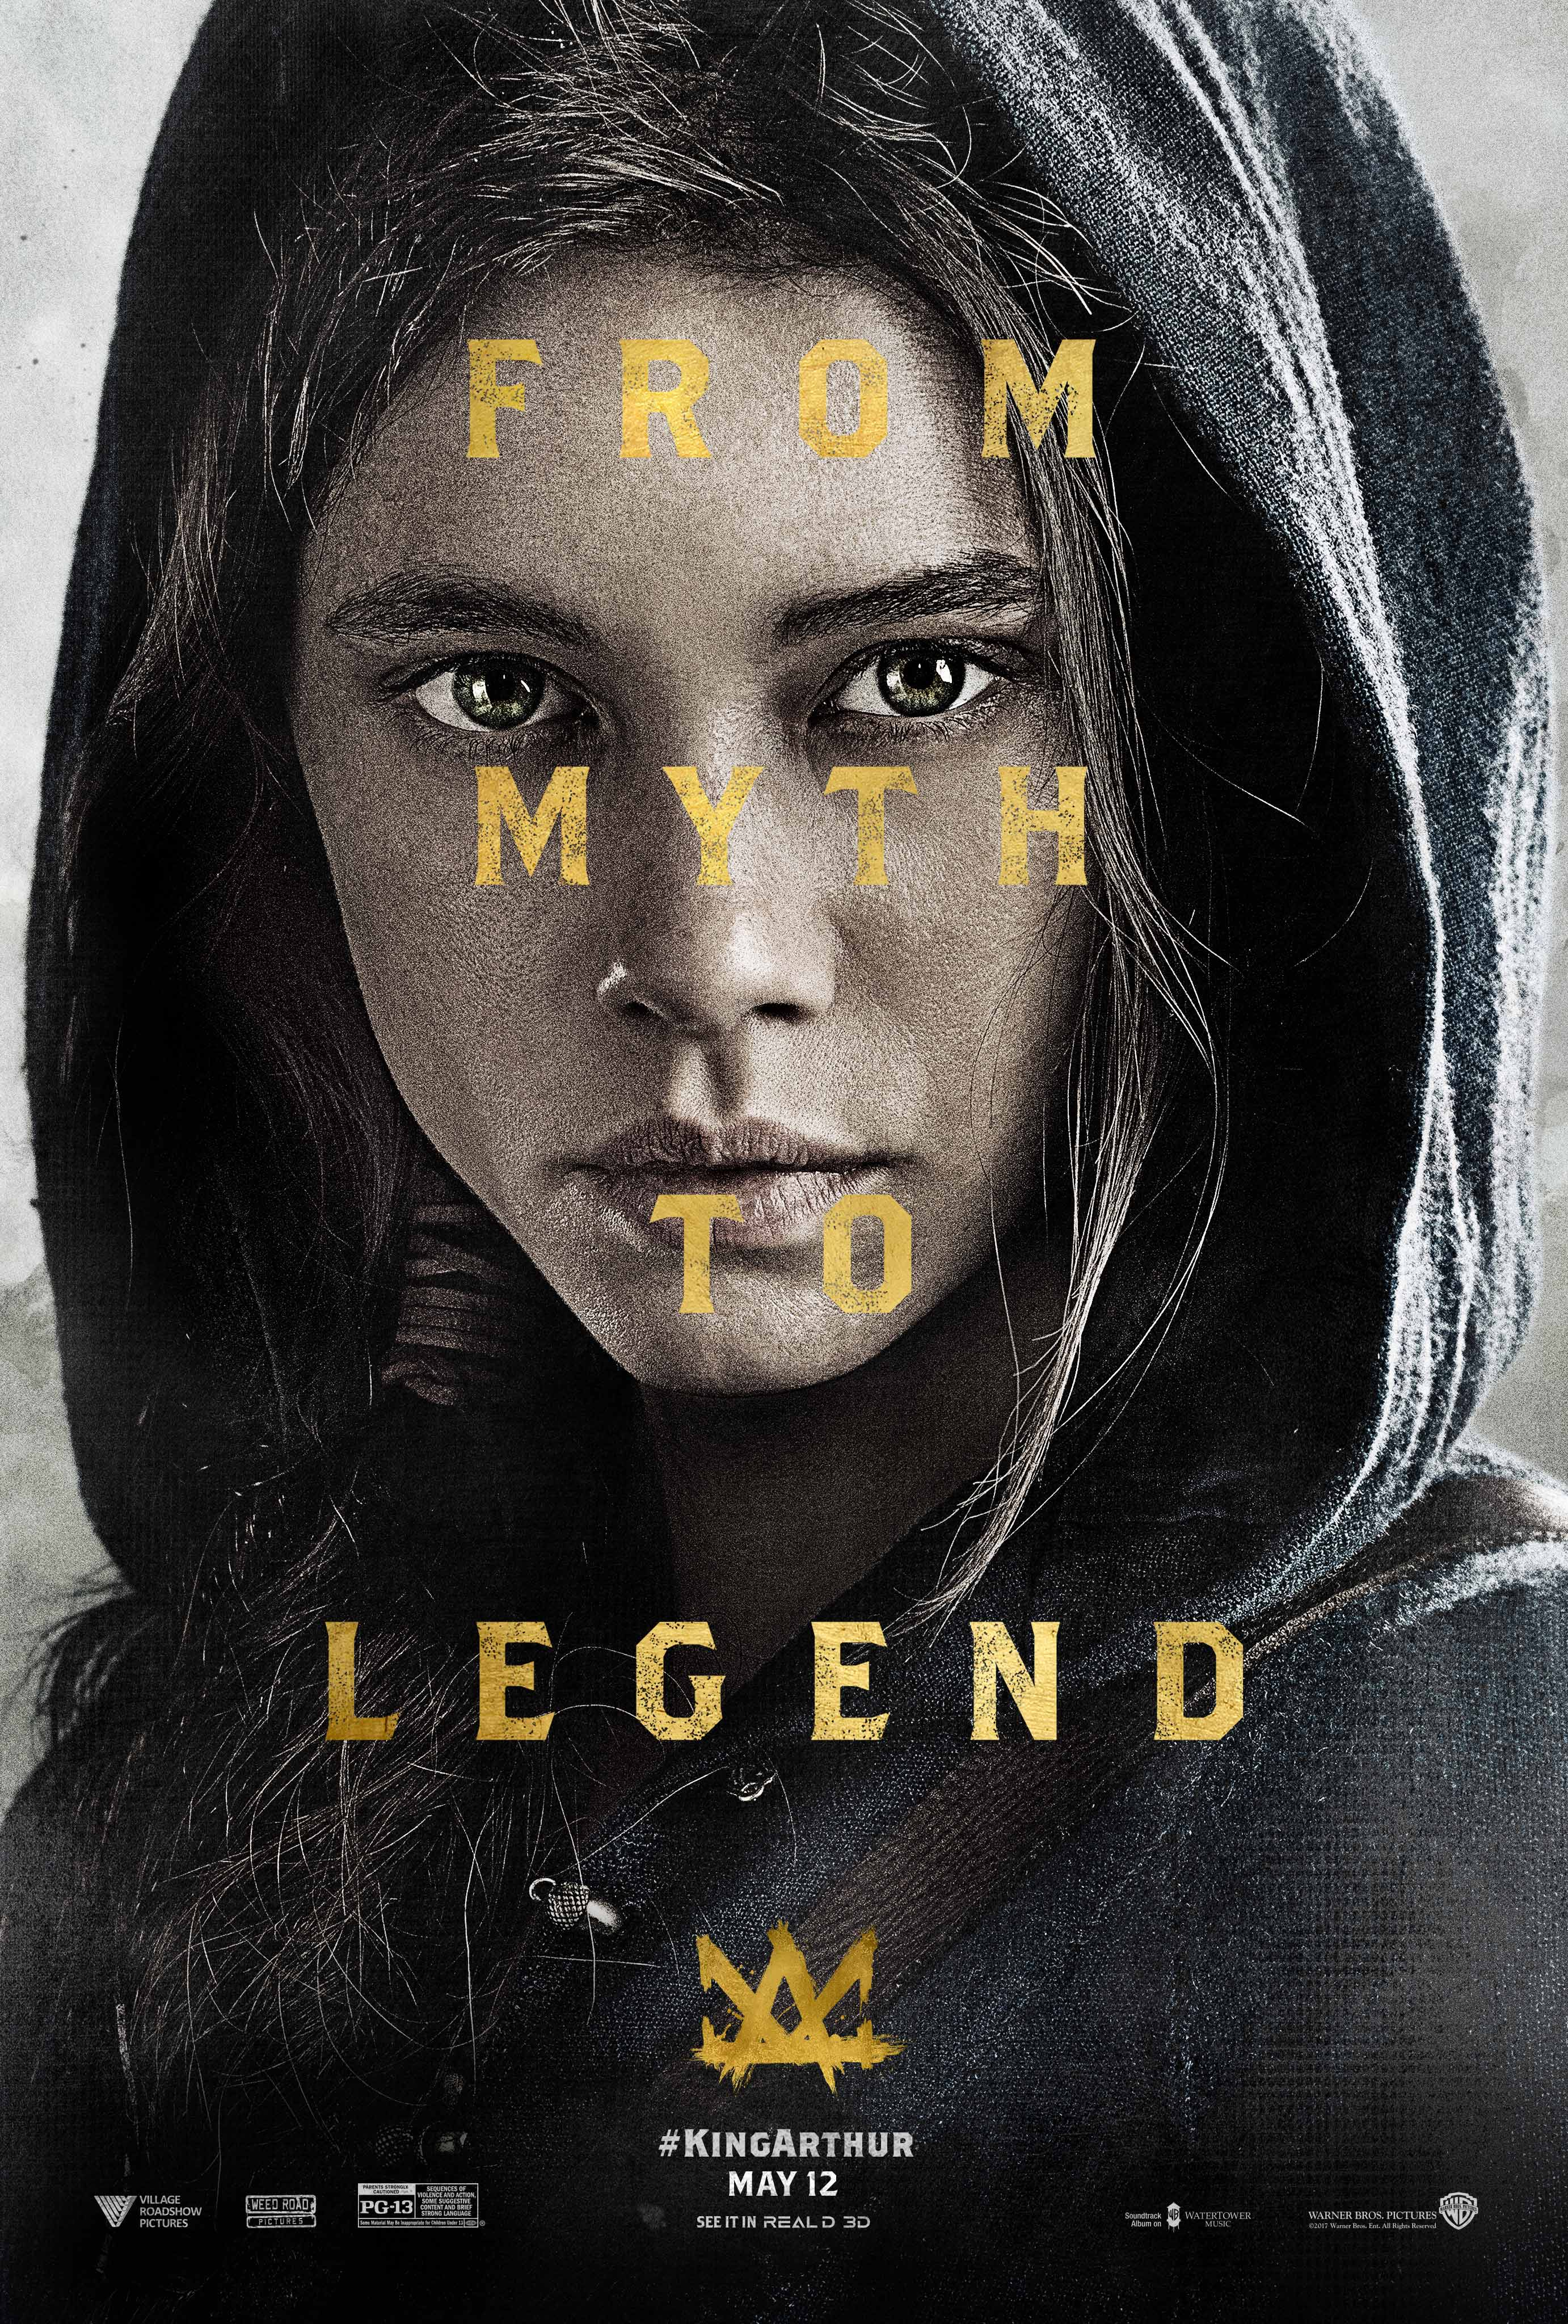 Myth Becomes Legend In New Character Poster For King Arthur: Legend Of The Sword